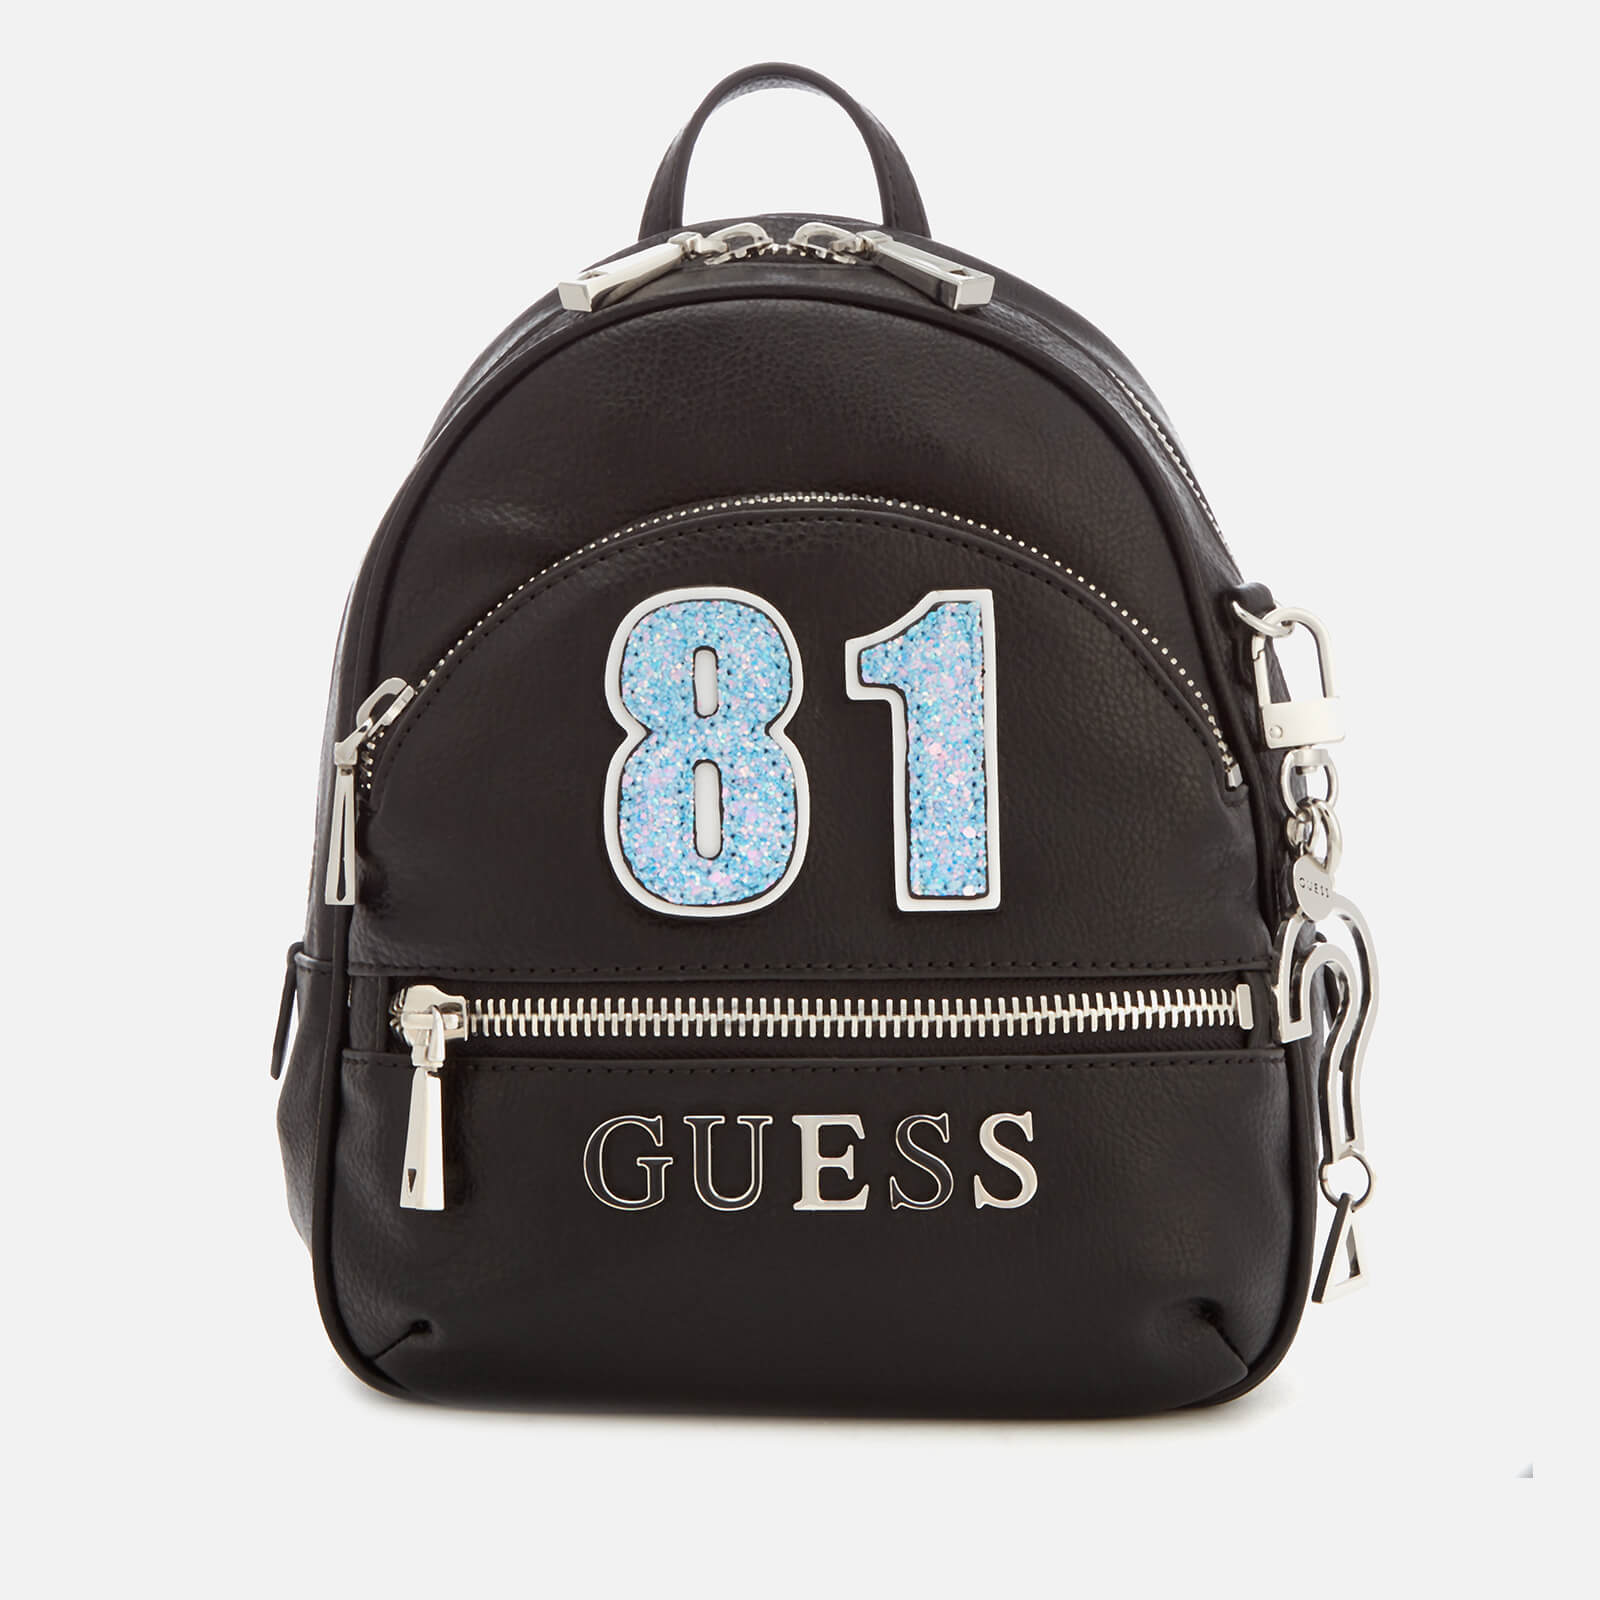 13257d9bc91 Guess Women s Manhattan Small Backpack - Black Womens Accessories ...